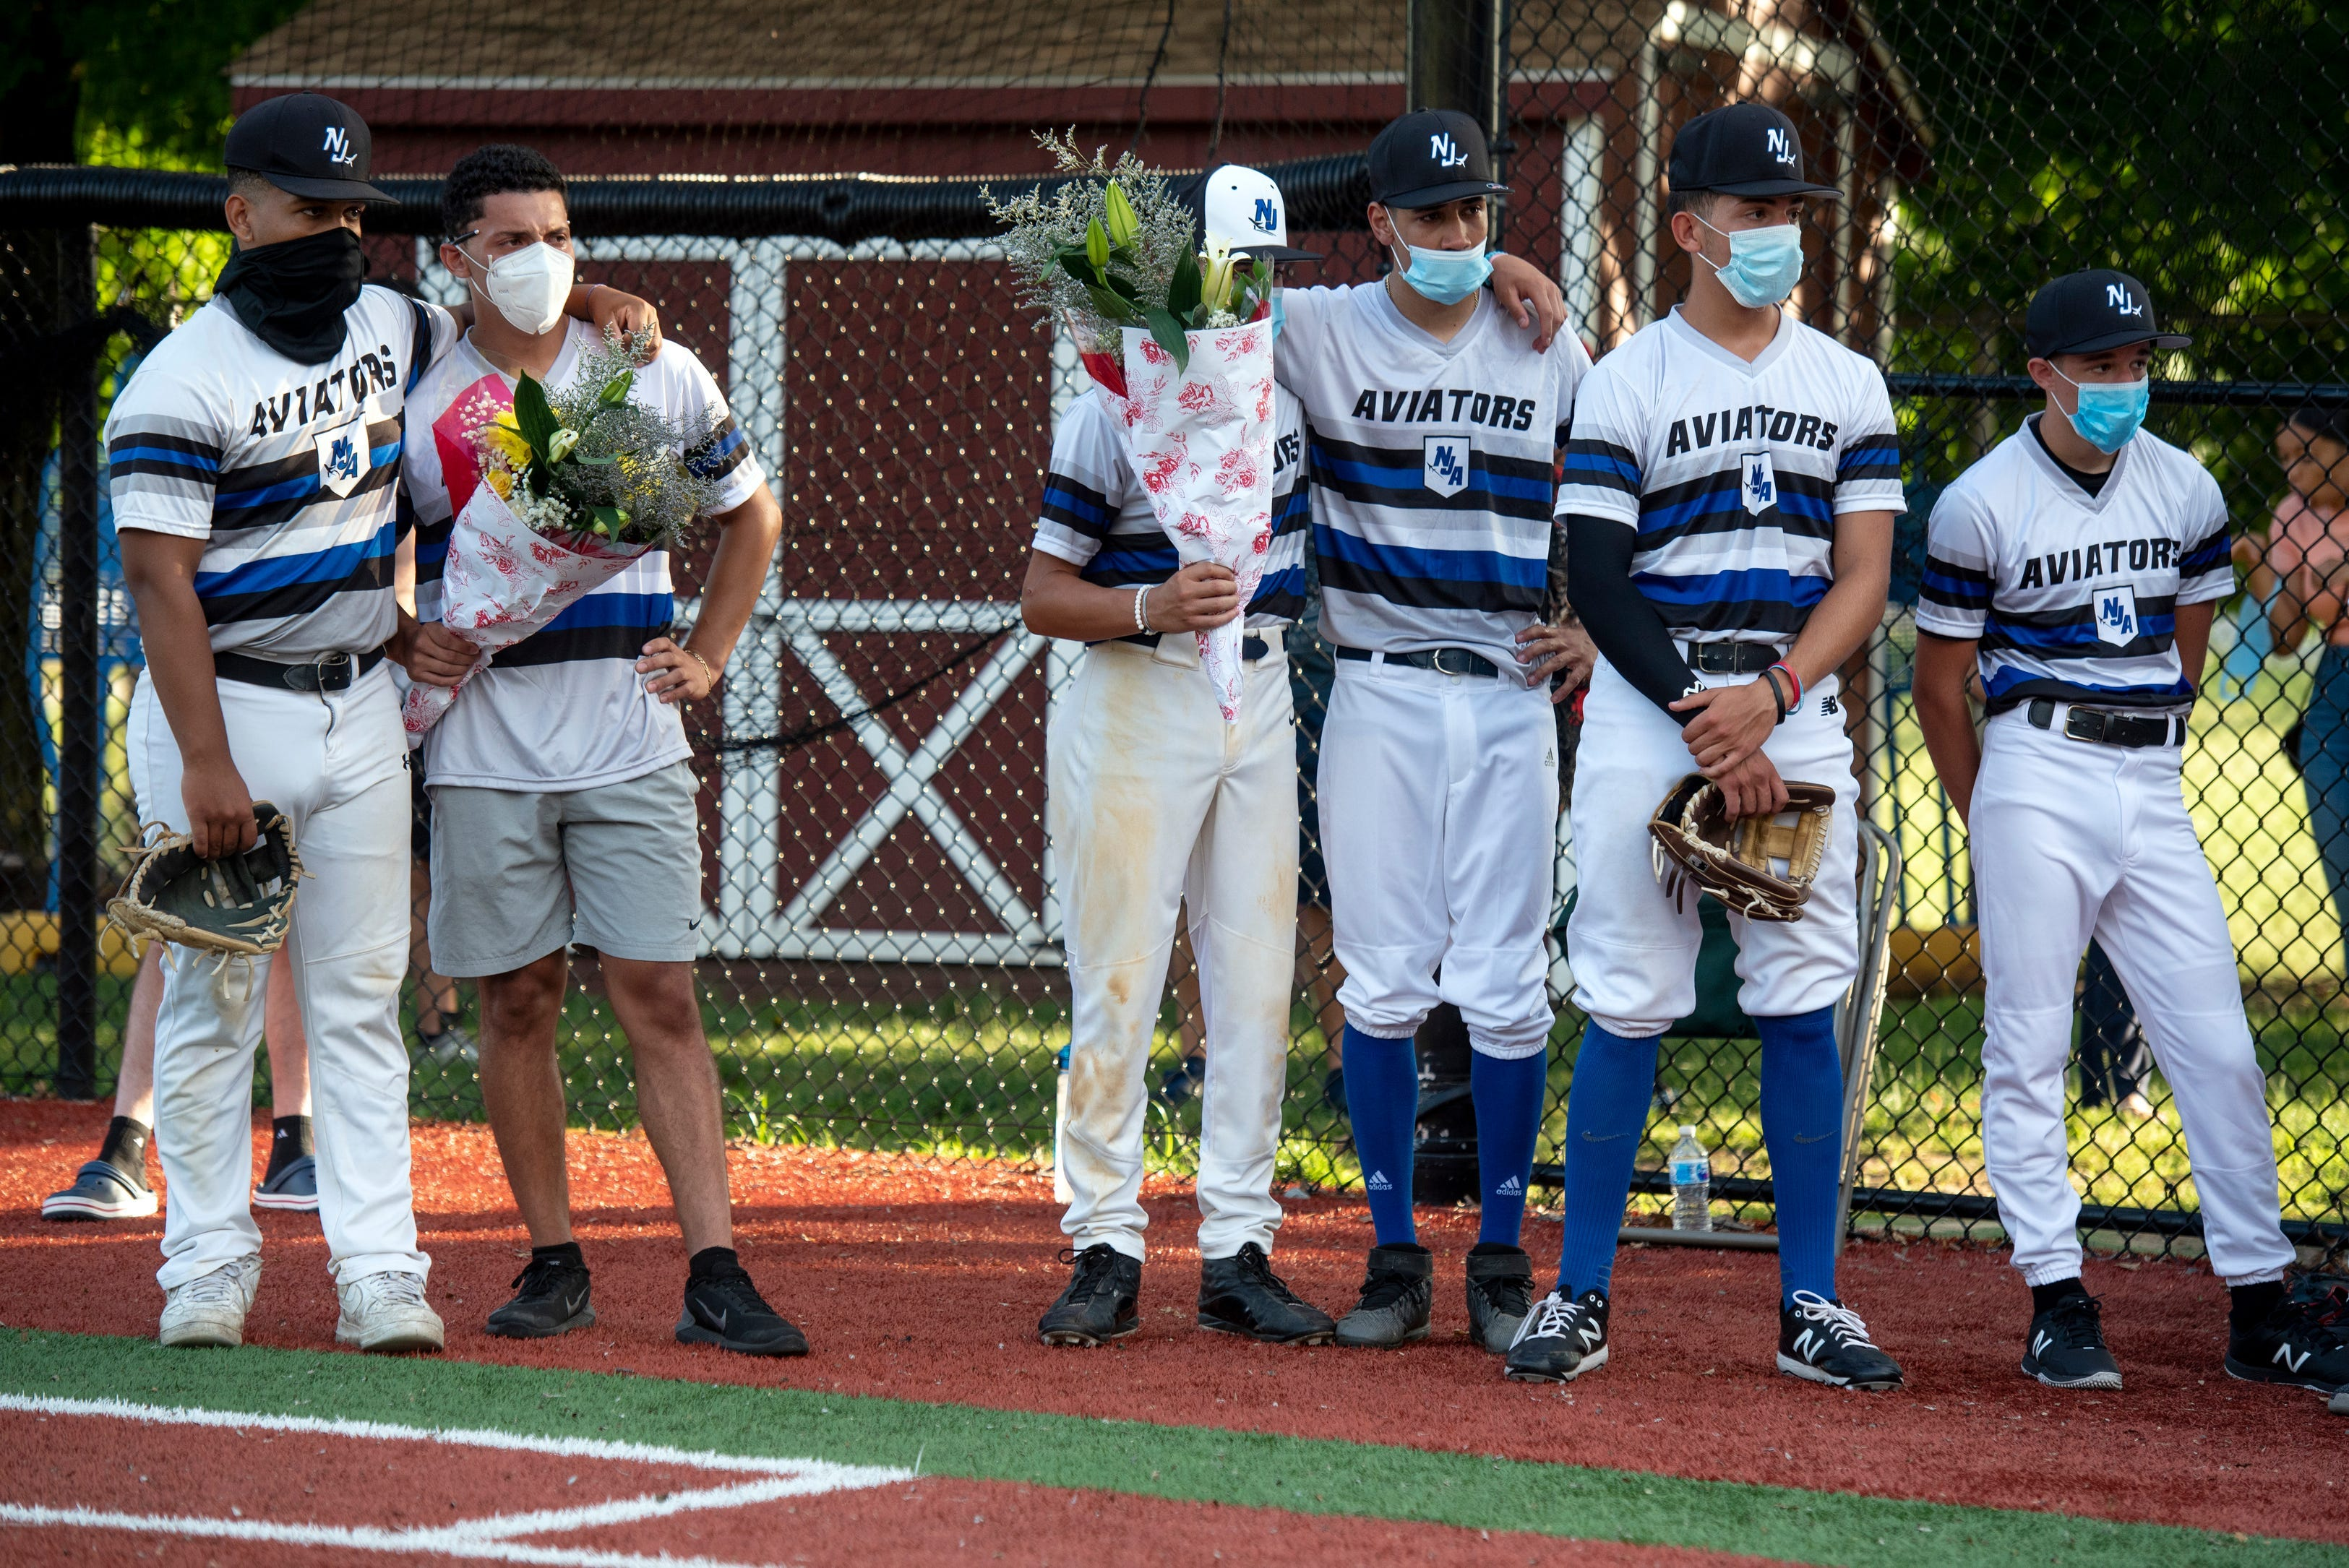 Baseball coach and Don Bosco Preparatory High School alum Ben Luderer is honored before a tournament game in Ramsey, New Jersey.